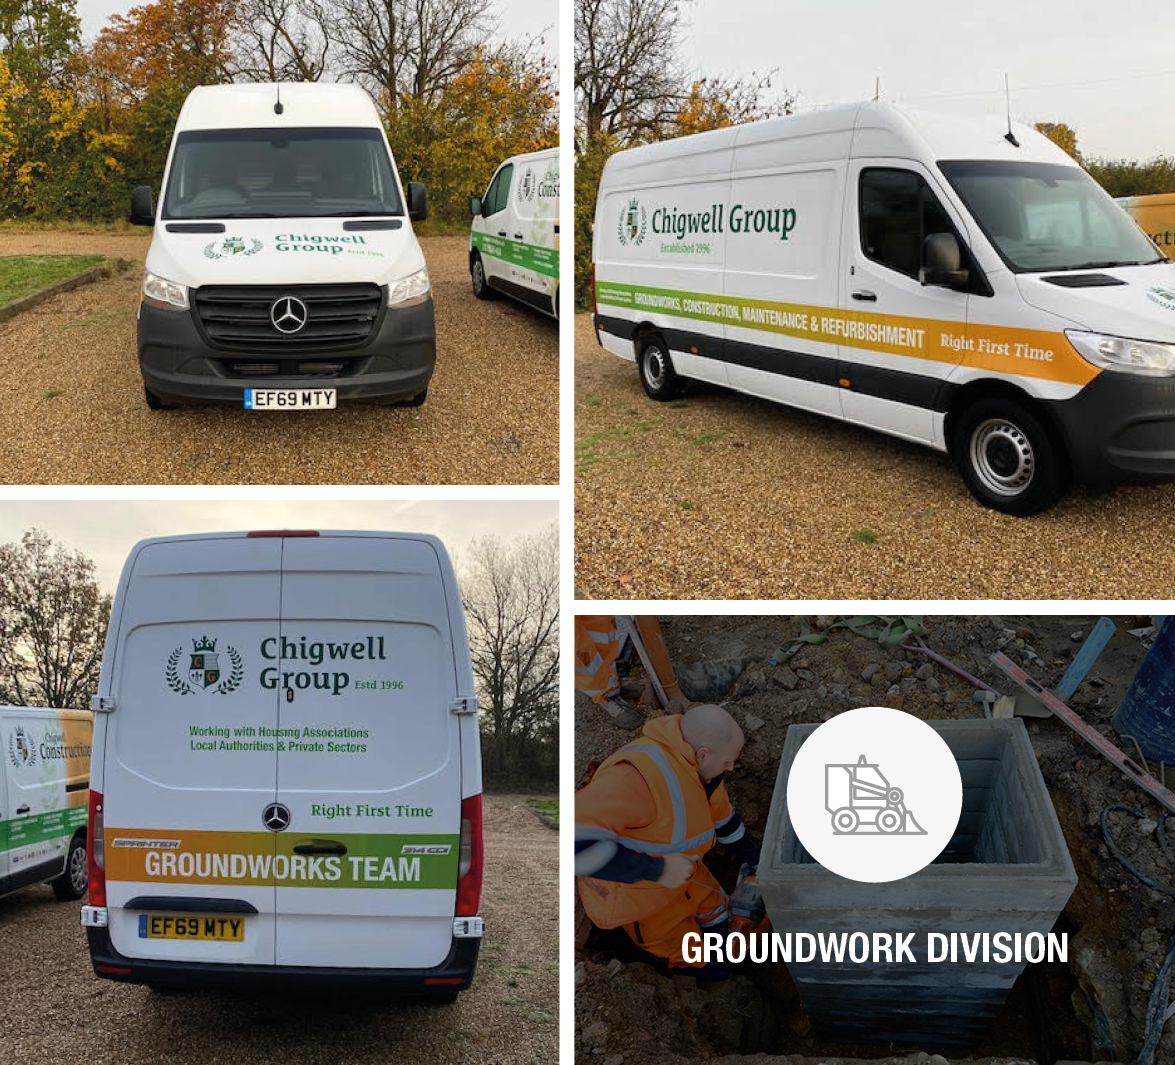 Chigwell Group Groundwork Division